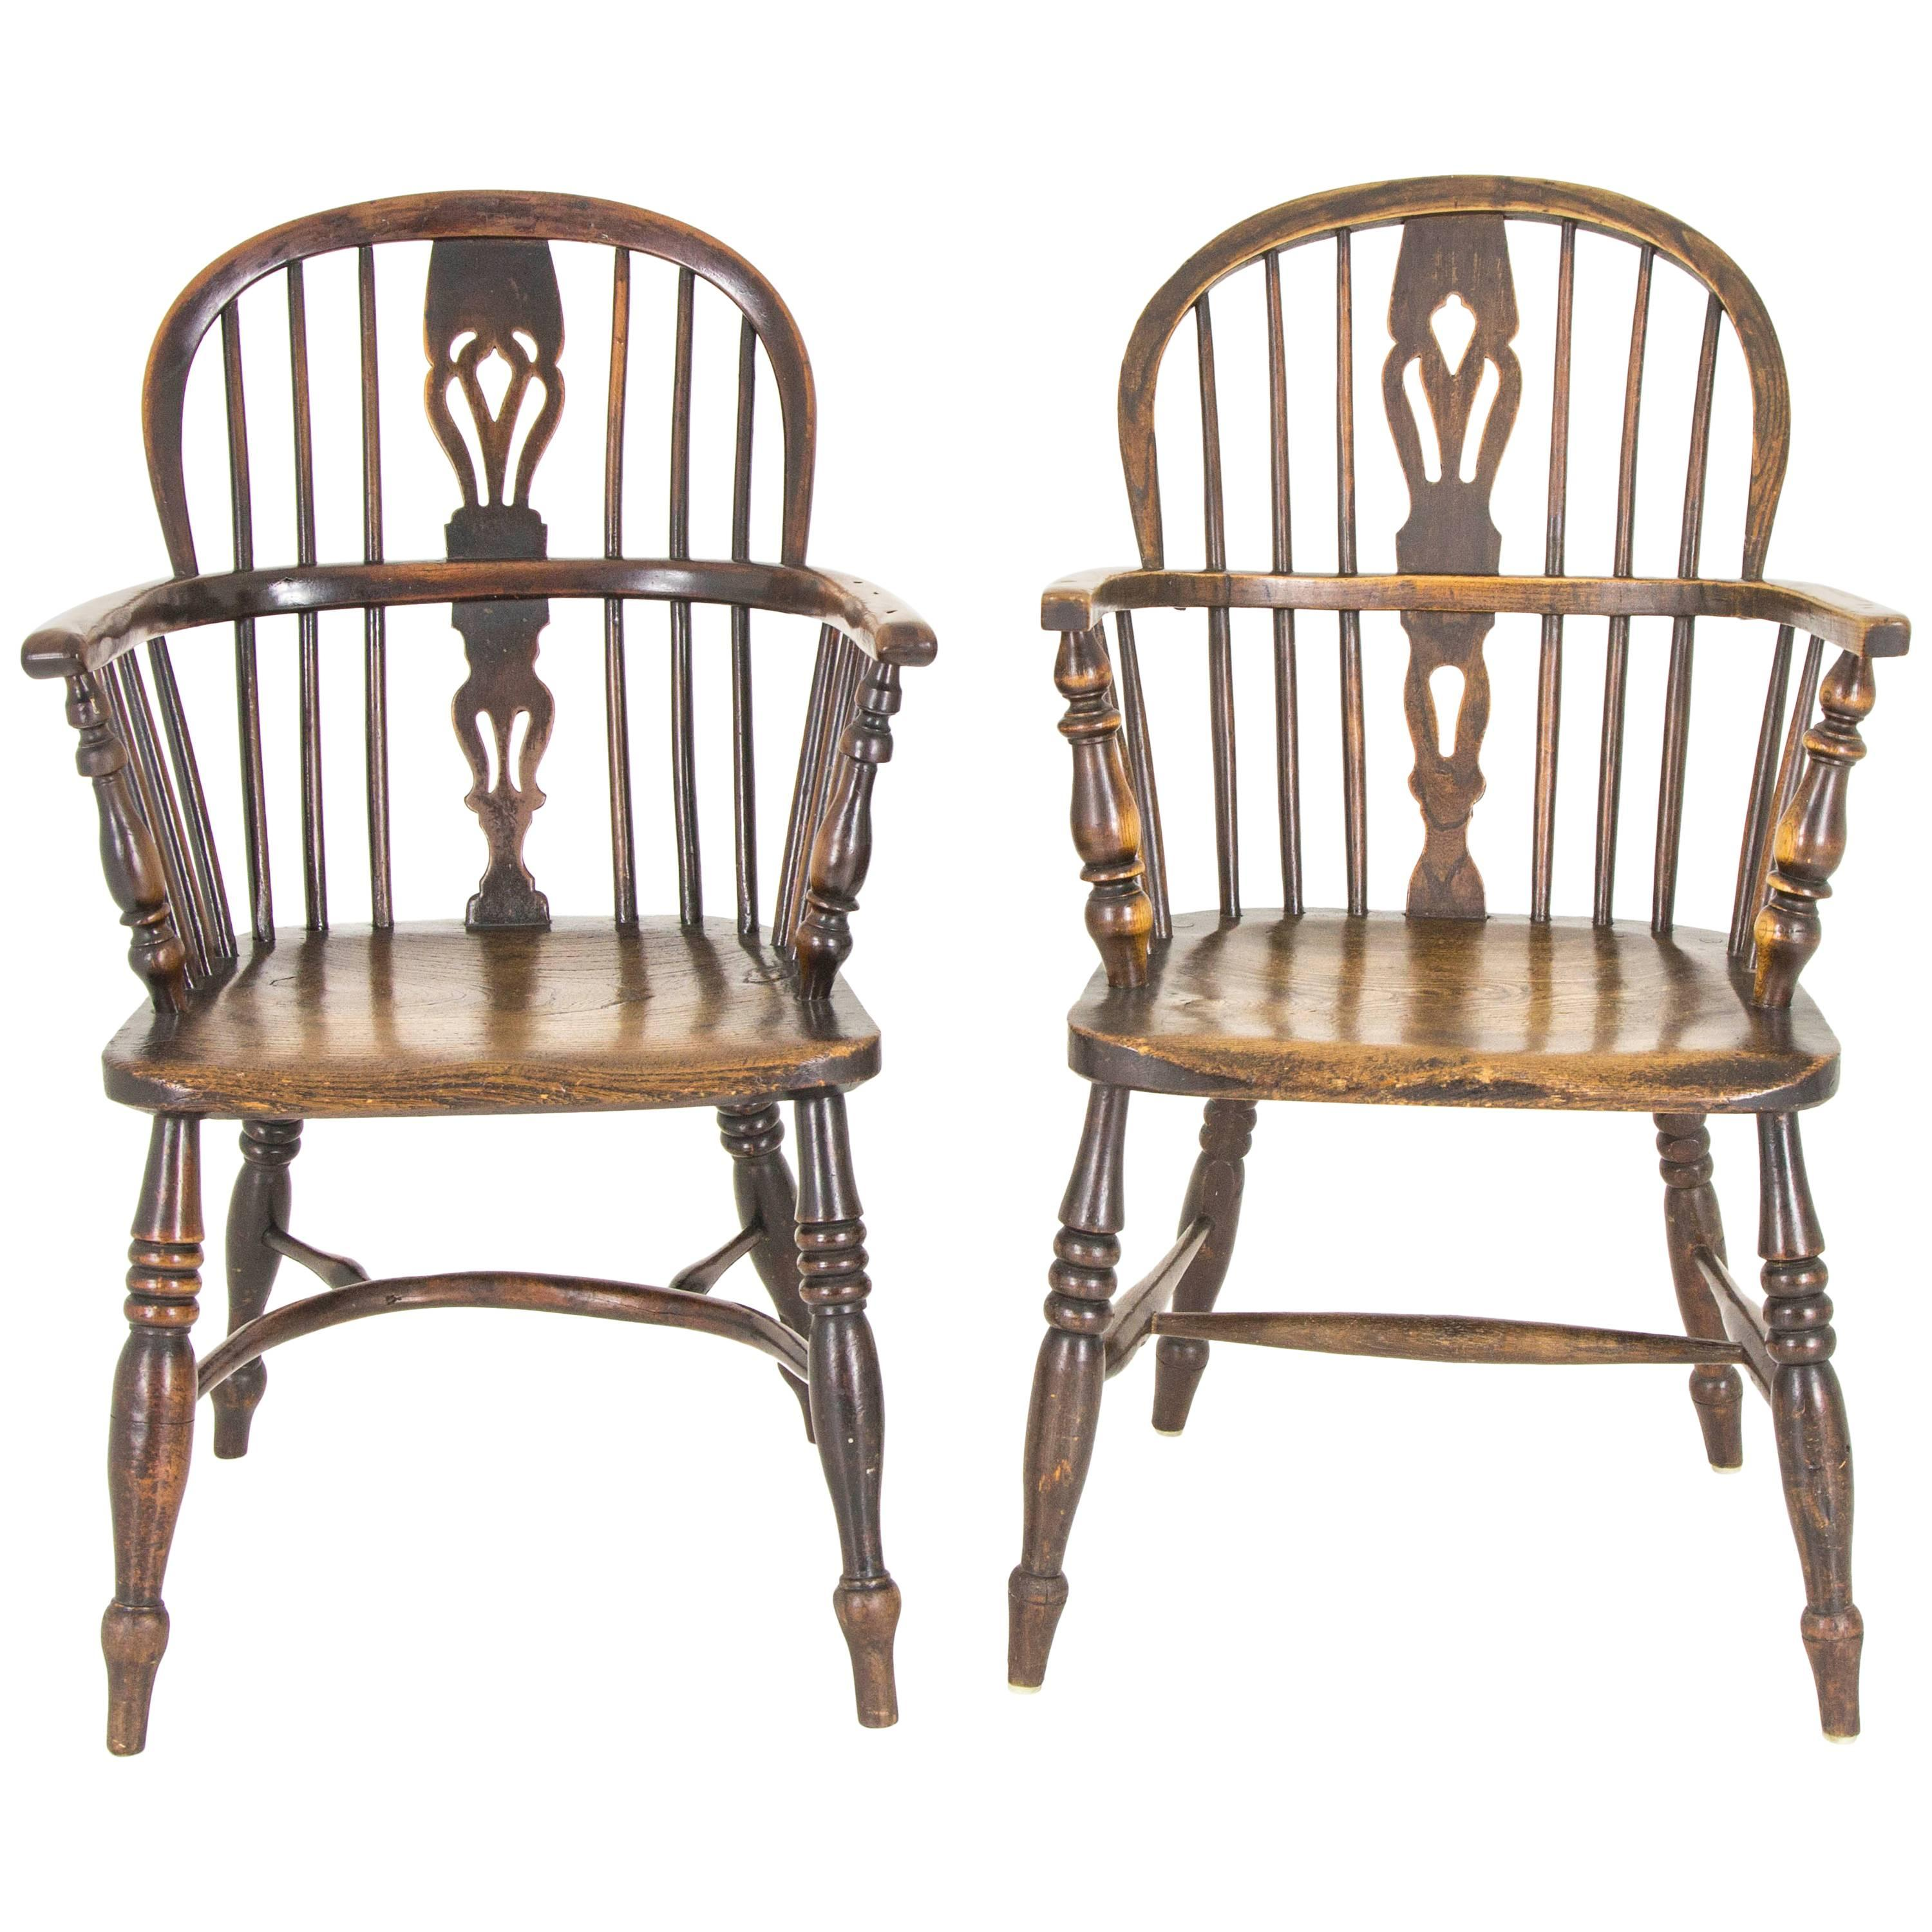 Attractive Pair Of Windsor Chairs Antique Chairs High Back Chairs, Scotland, 1920 1